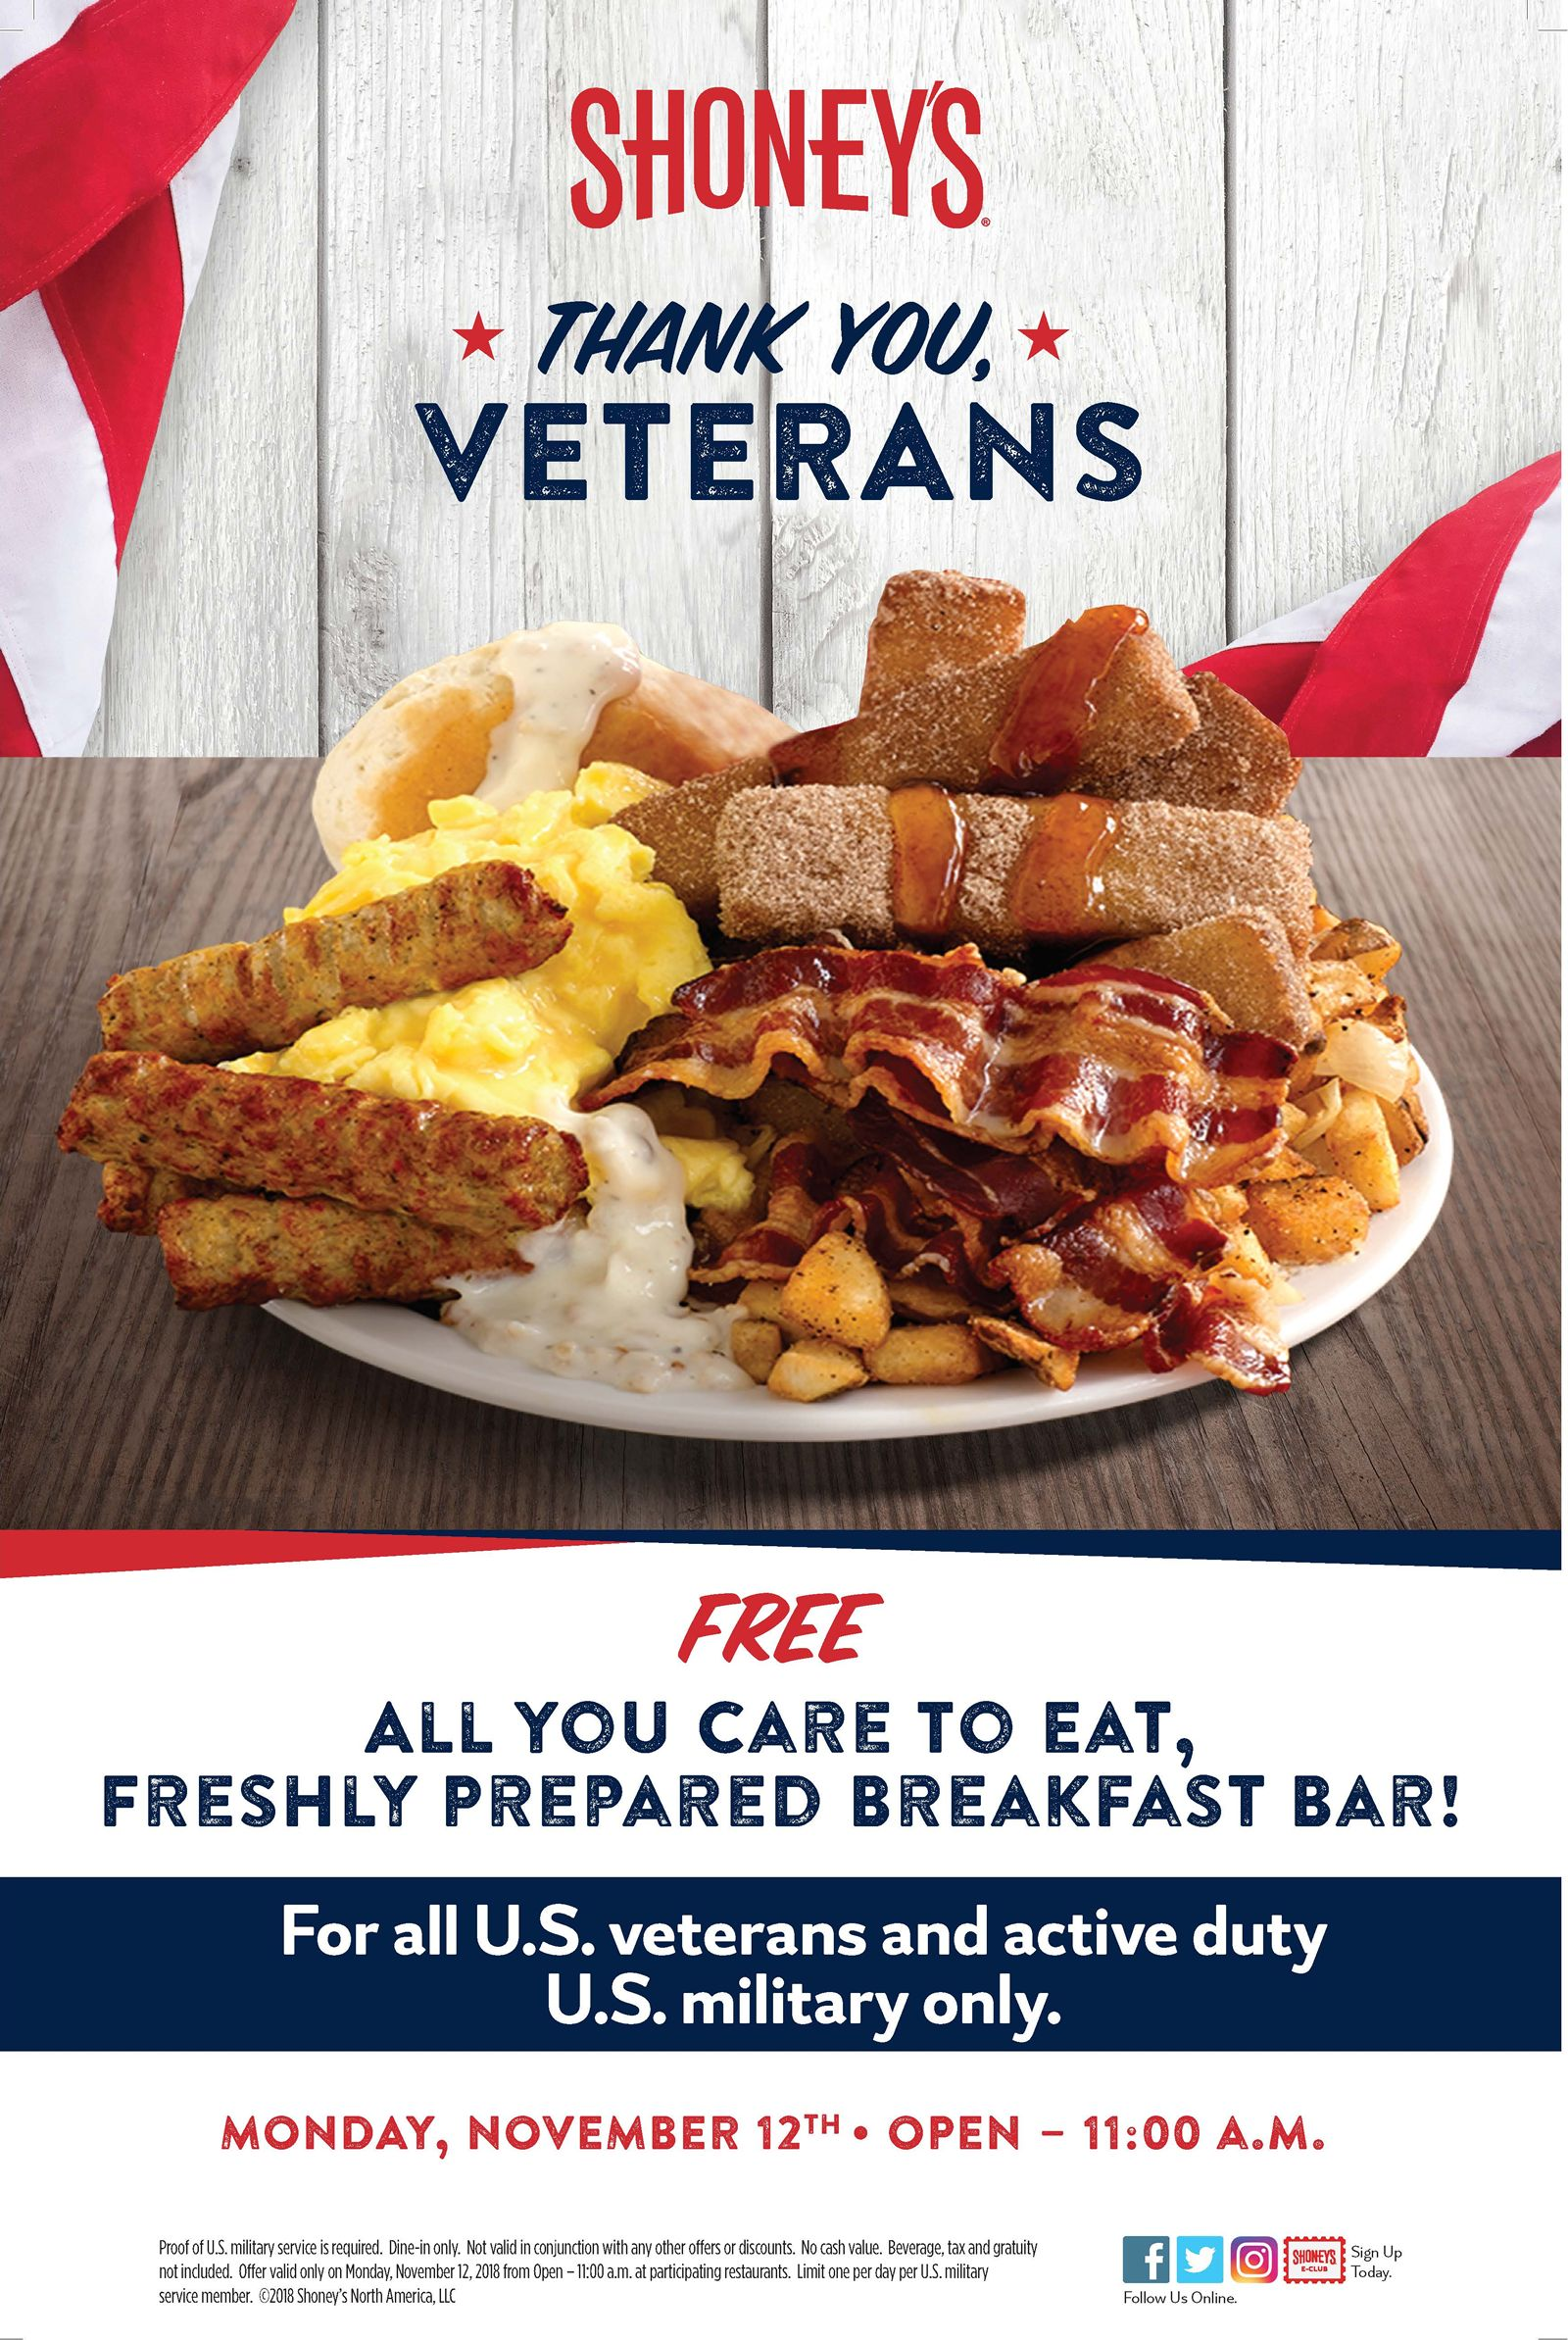 Shoney S Offers Free All You Care To Eat Freshly Prepared Breakfast Bar For Veterans And